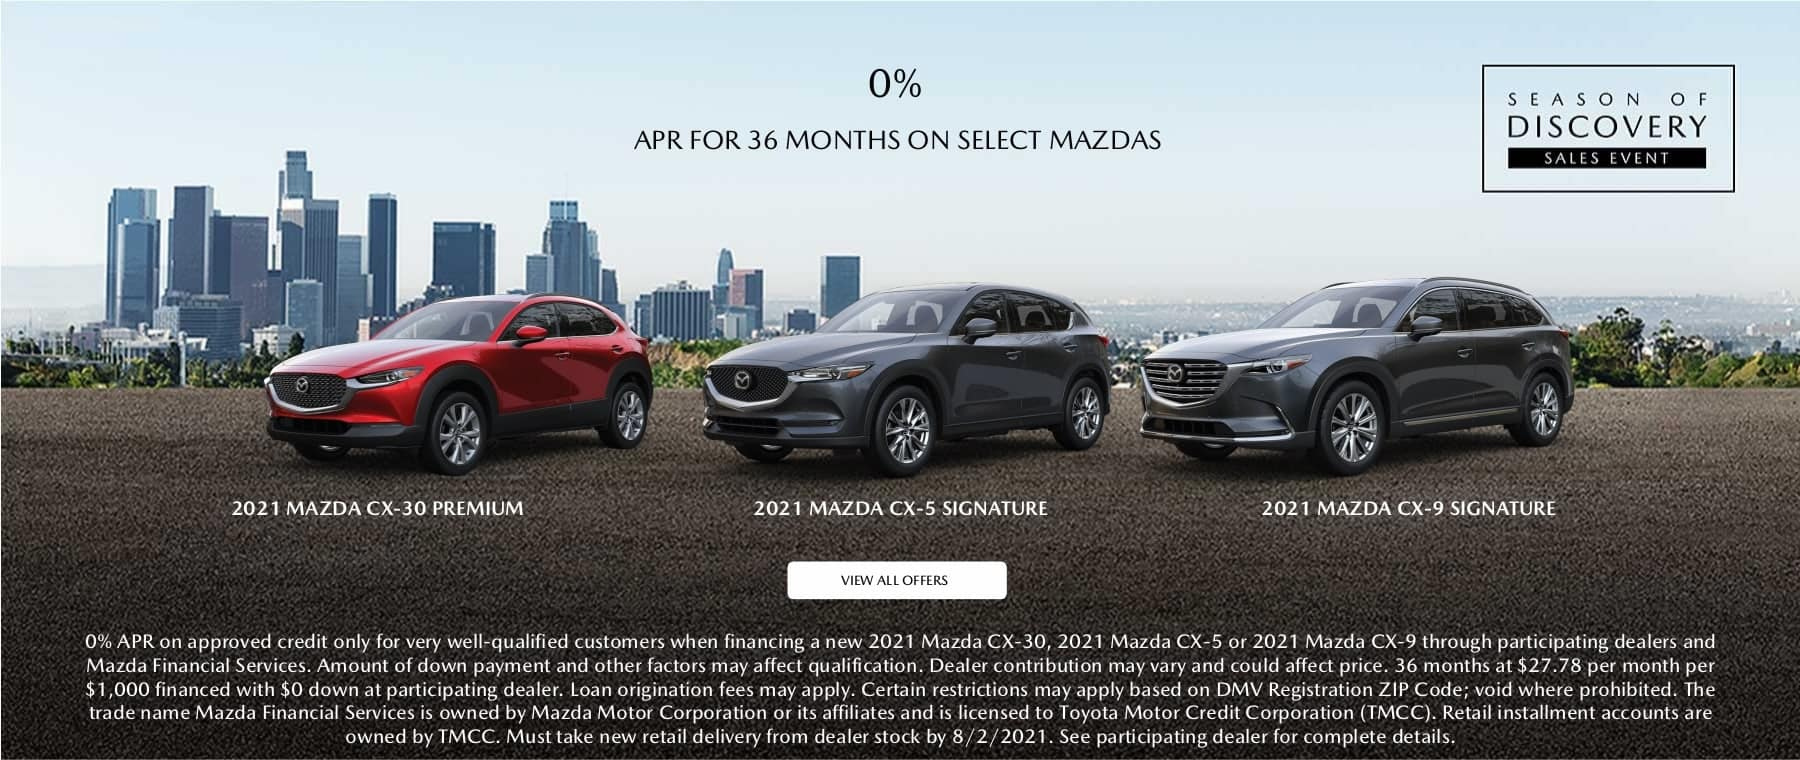 0% for 36 months on select Mazdas